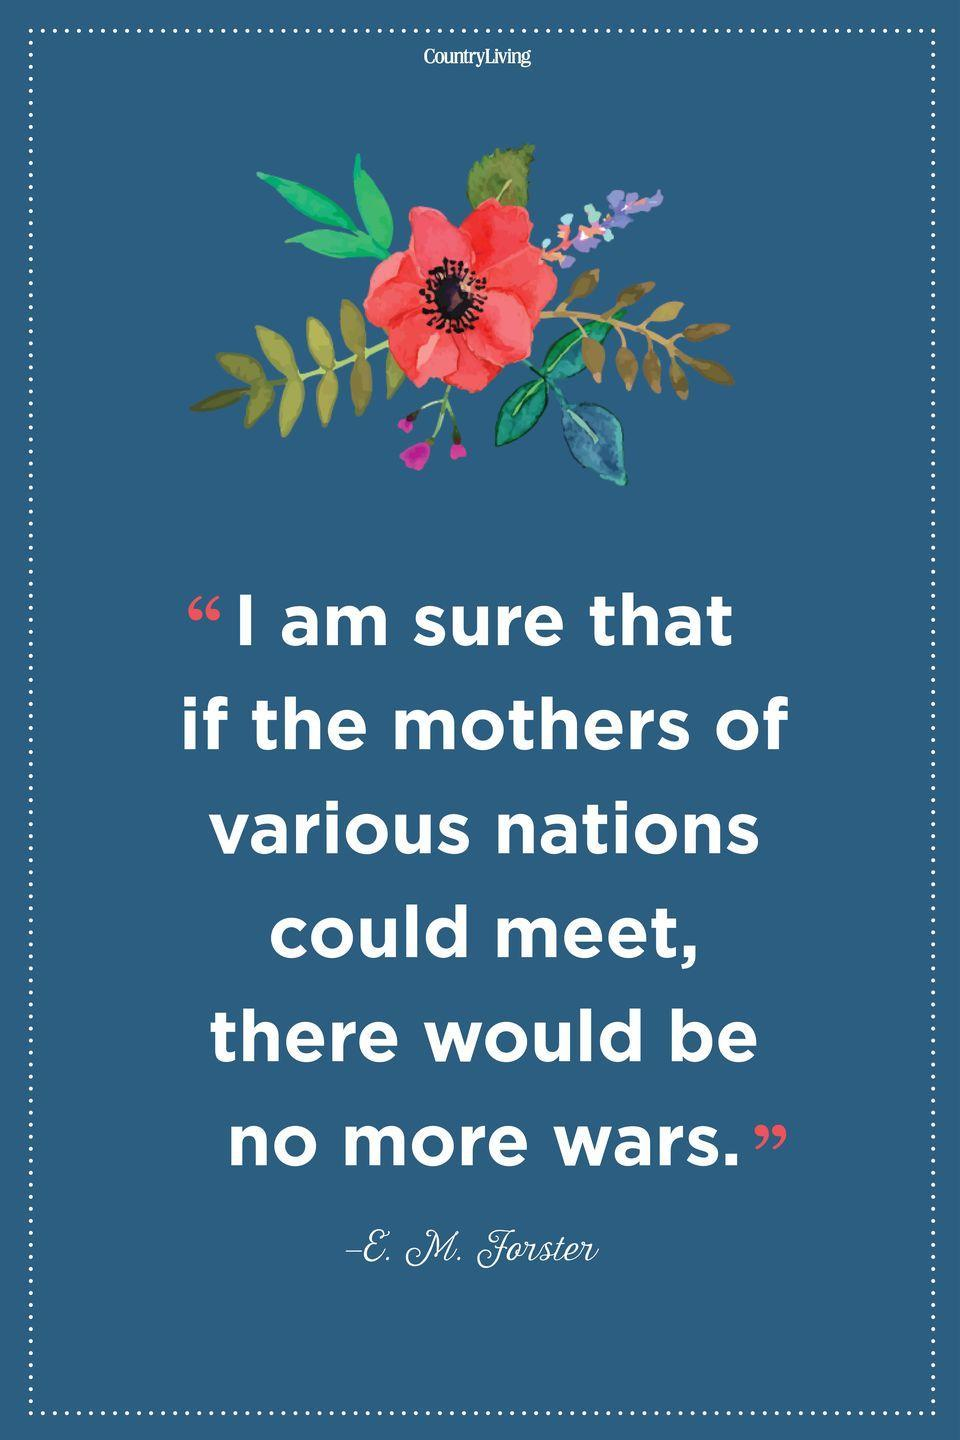 "<p>""I am sure that if the mothers of various nations could meet, there would be no more wars.""</p>"